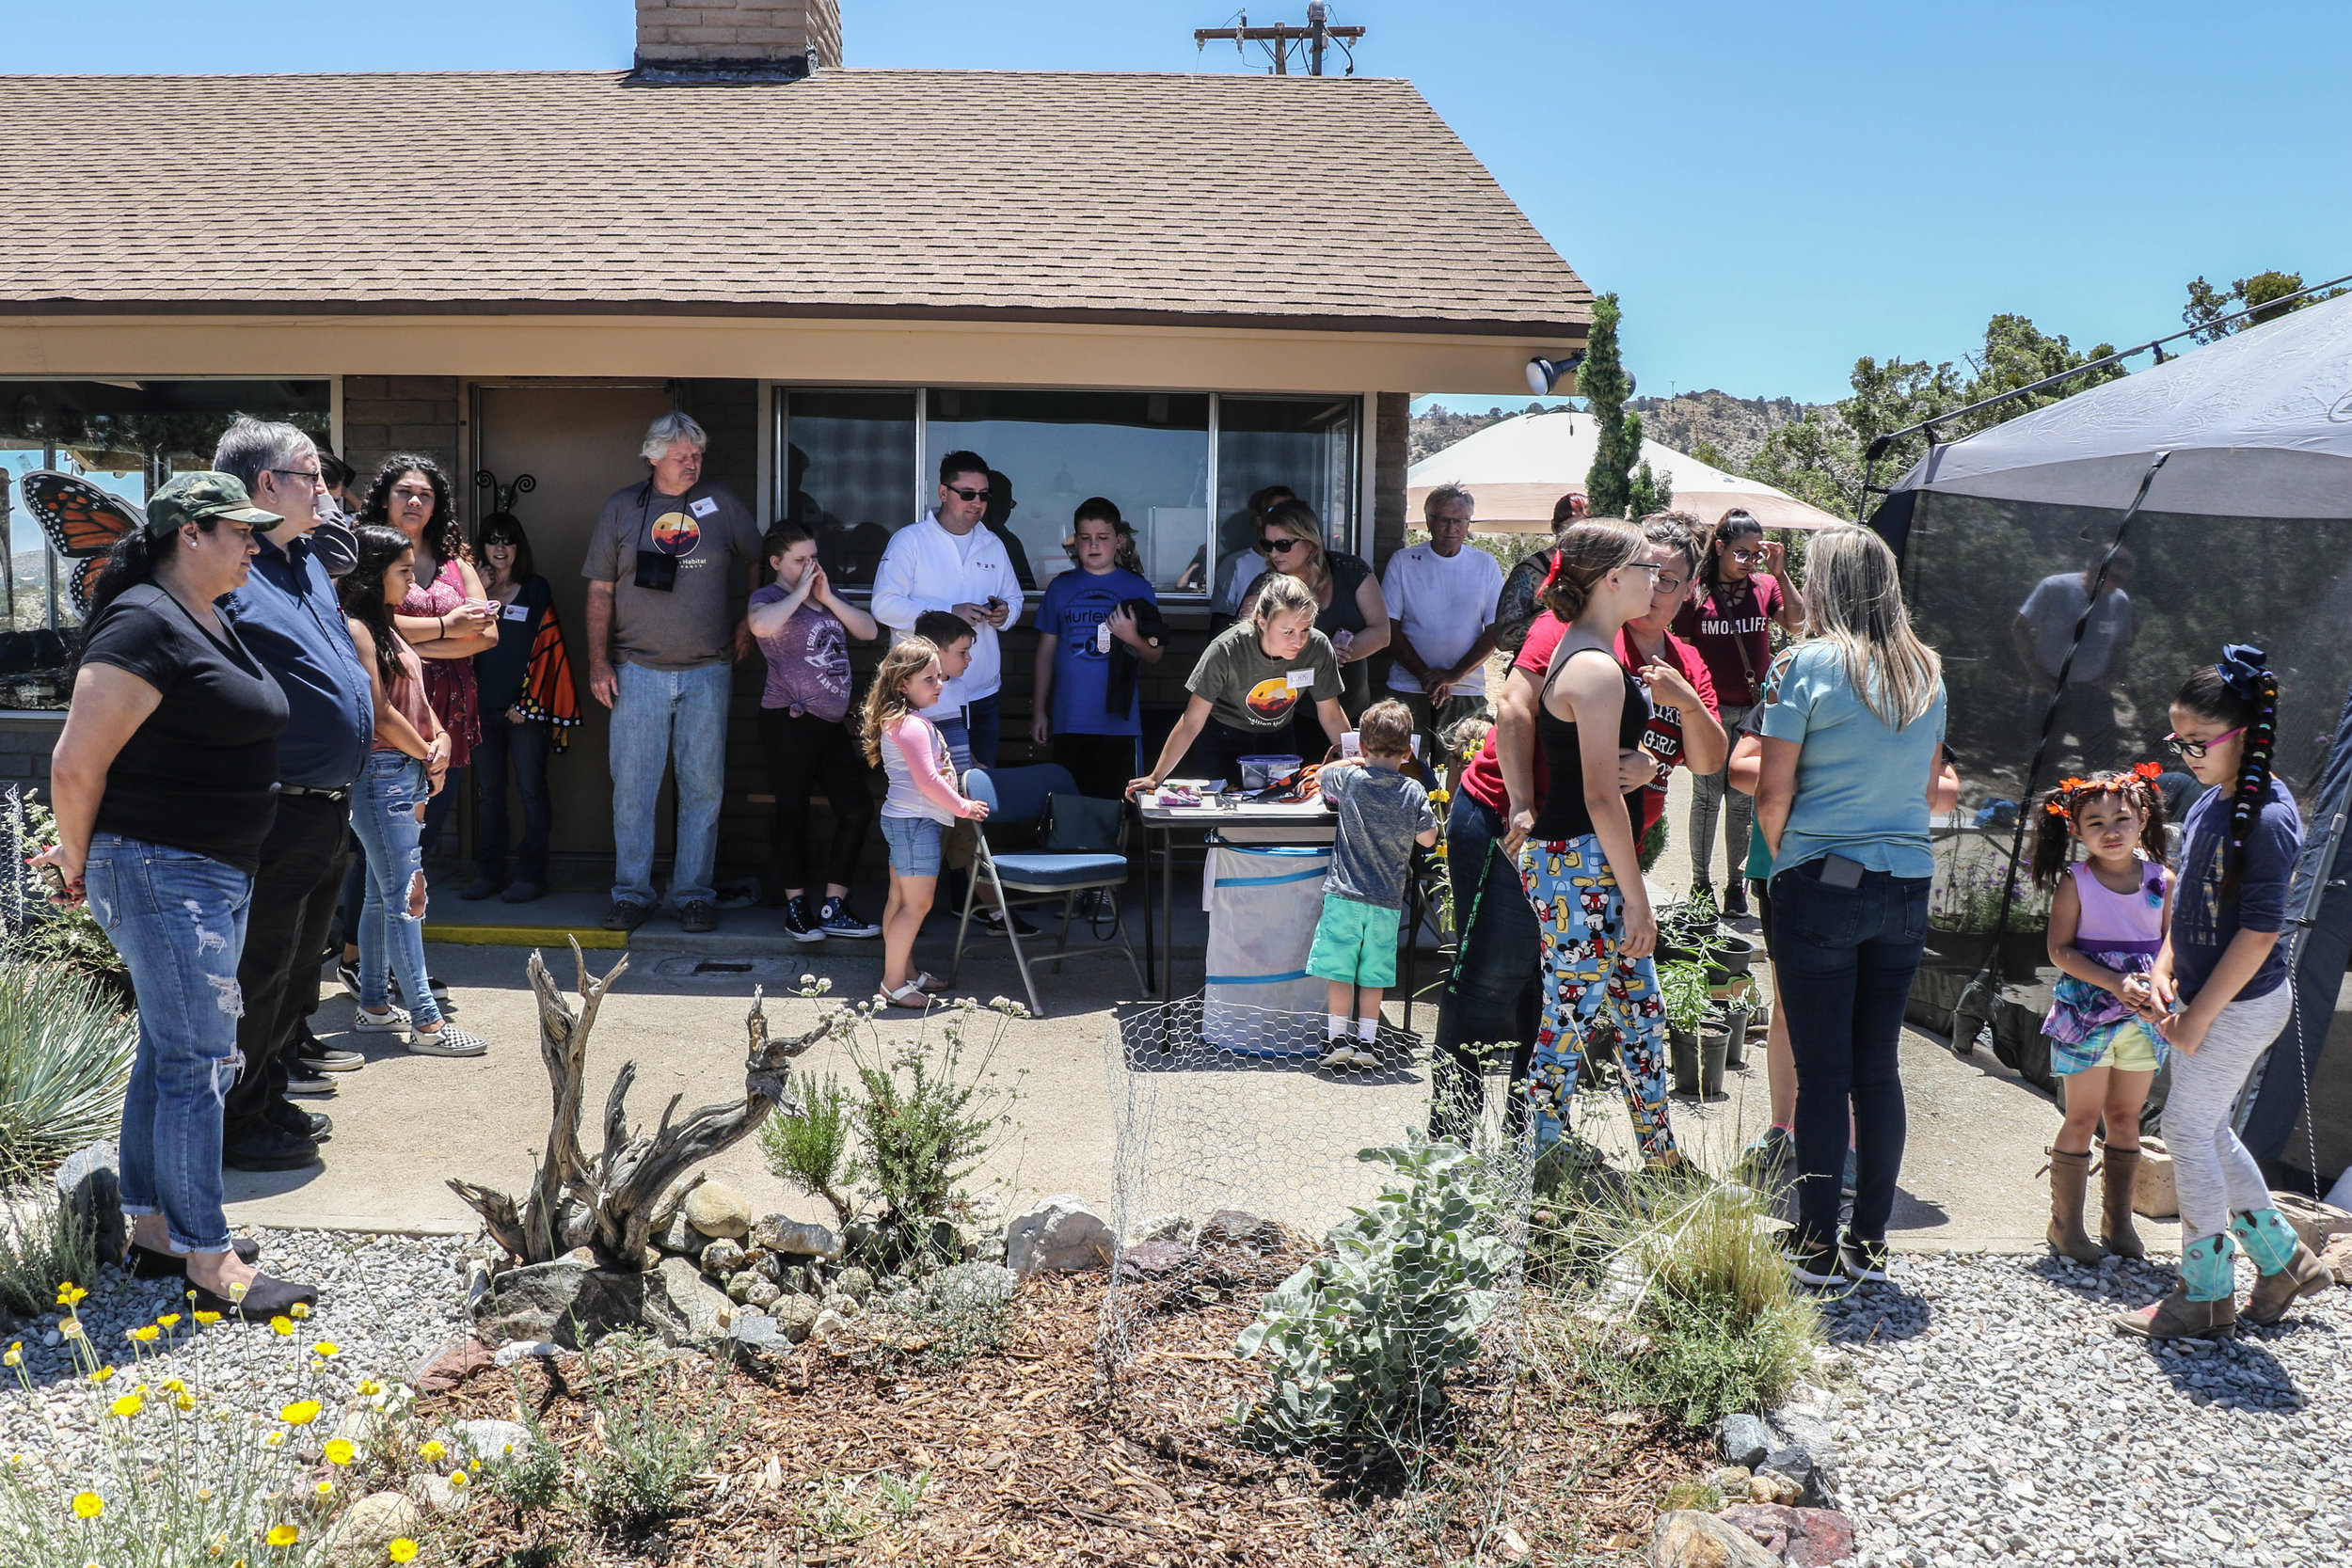 Thank you to all the volunteers that helped make the 2018 Monarch Waystation and Pollinator Habitat open house a success. -